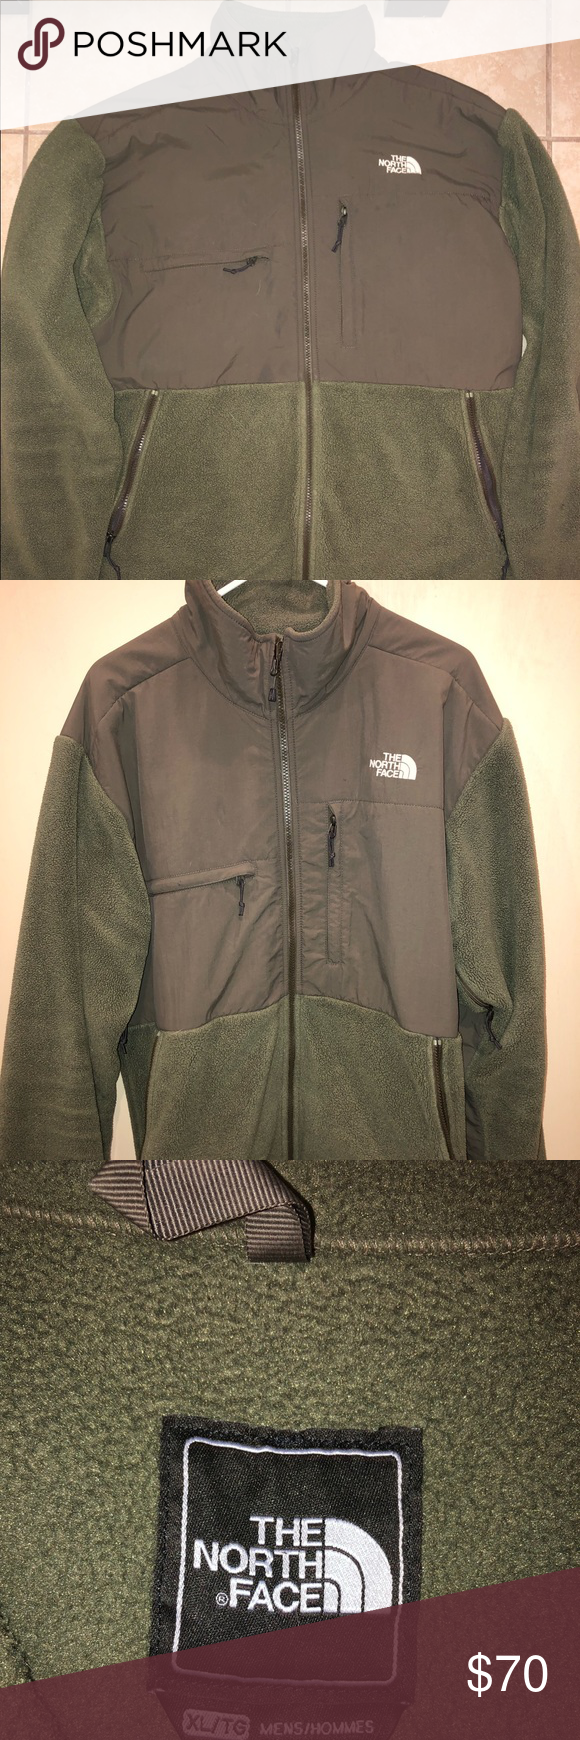 Xl The North Face Jacket North Face Jacket The North Face Jackets [ 1740 x 580 Pixel ]